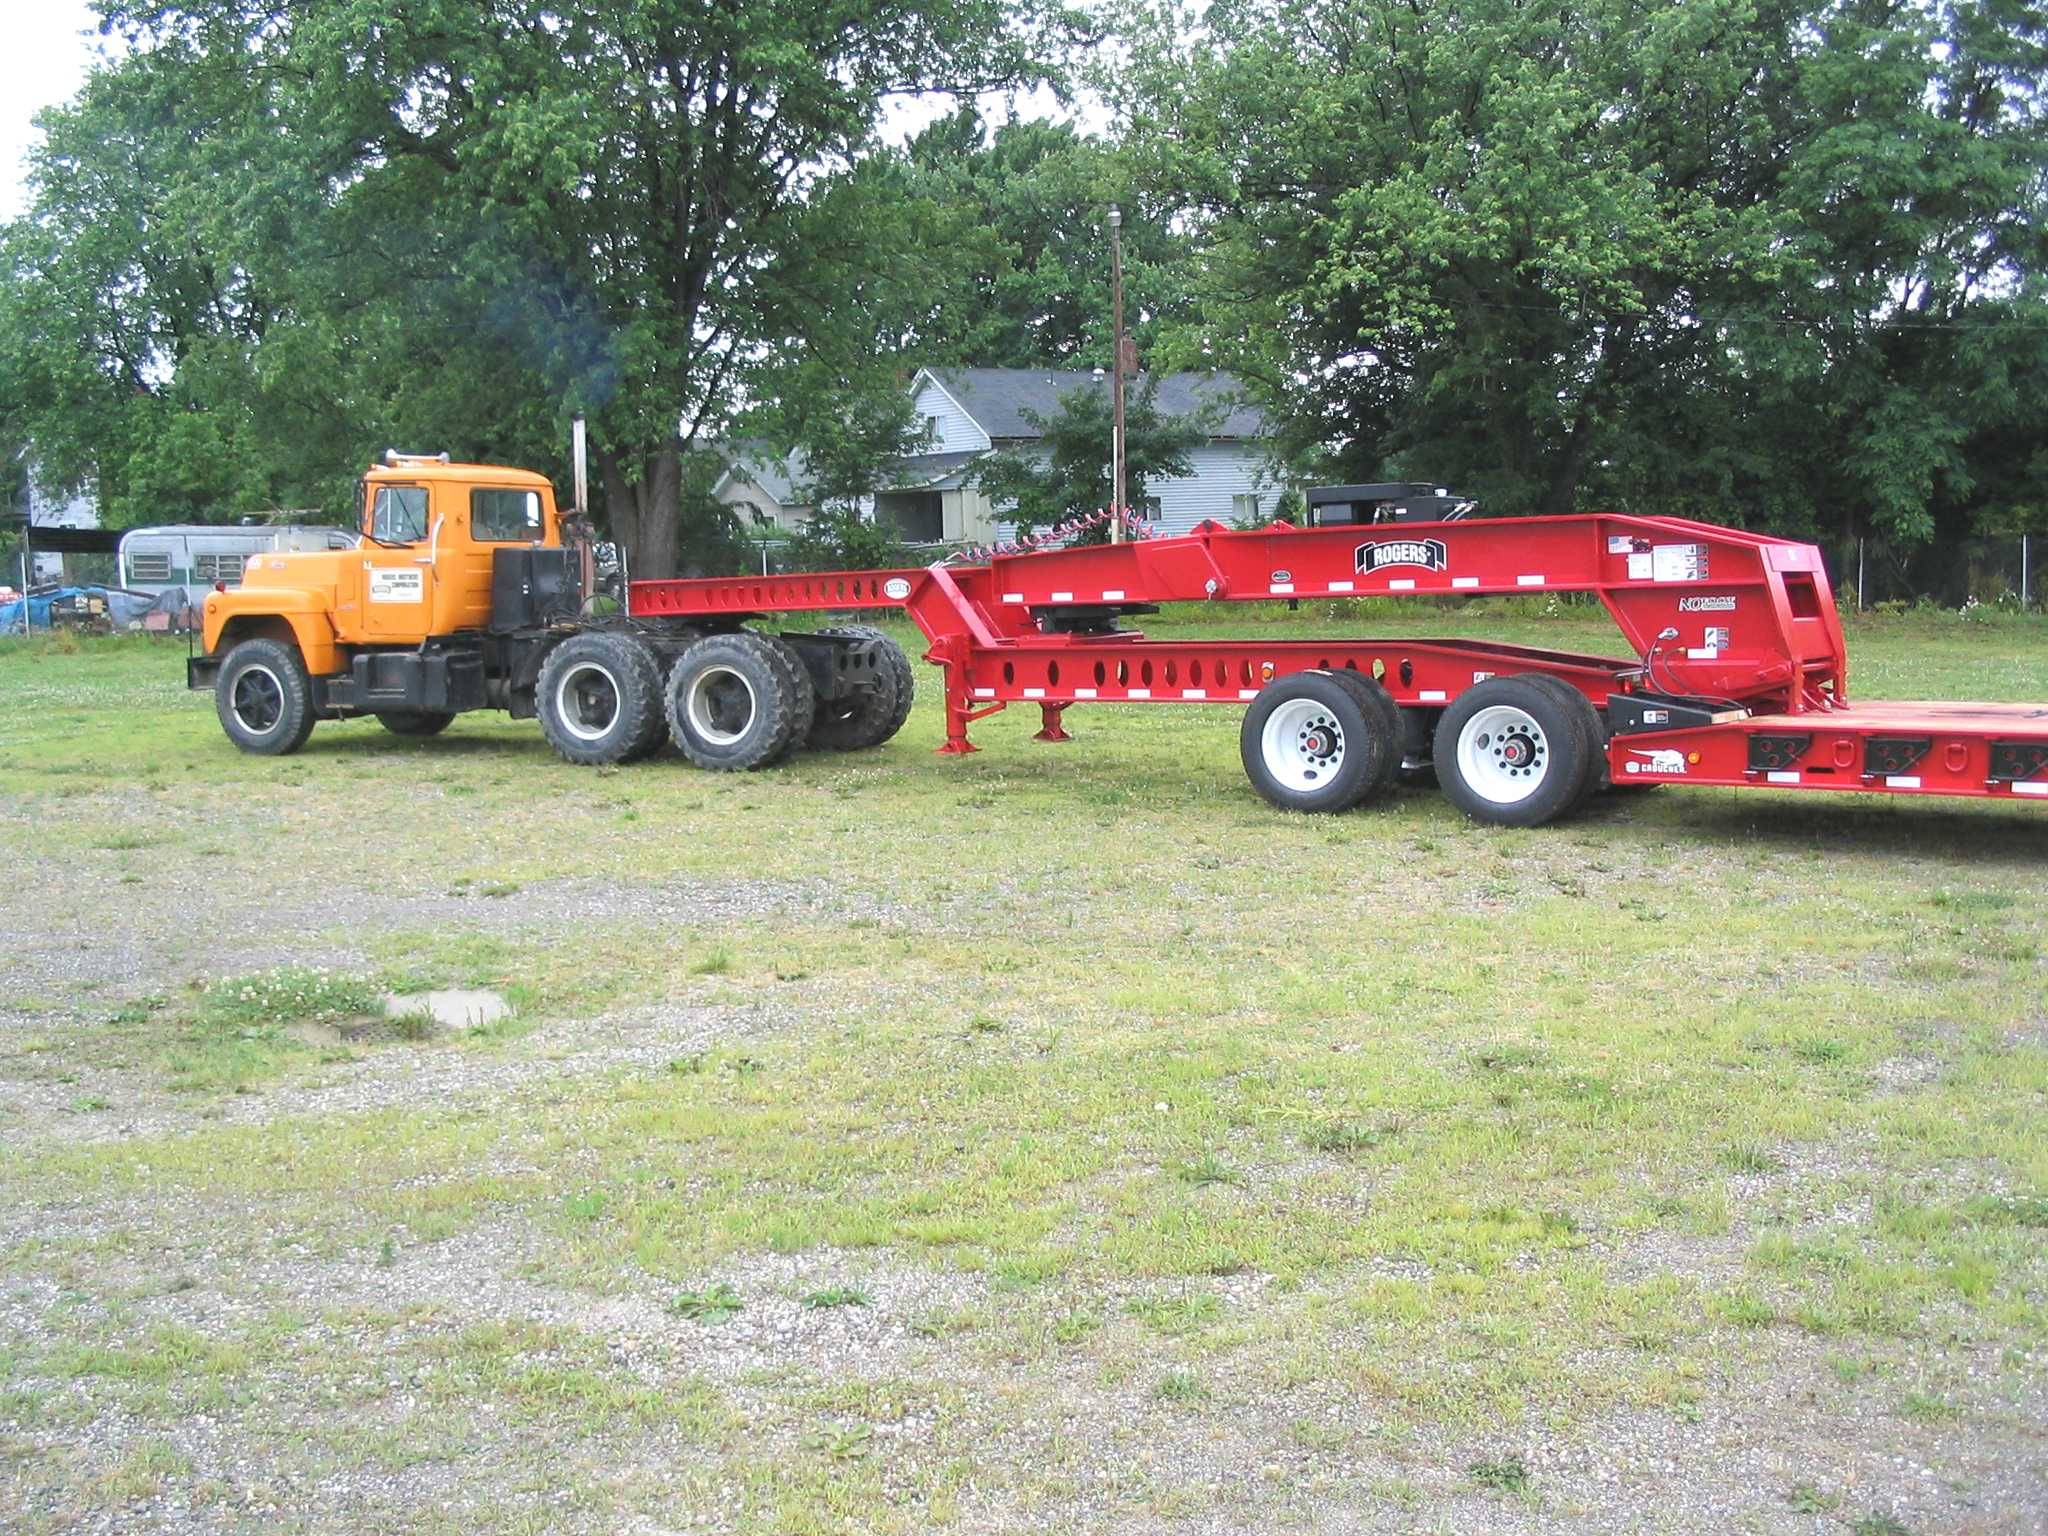 60 Ton Sp60pl 3xdrarbar4r5 Detachable Gooseneck Trailer Modular Double Car 24 Foot Flatbed Trailers It Features A Tandem Axle Jeep Dolly And The Patented